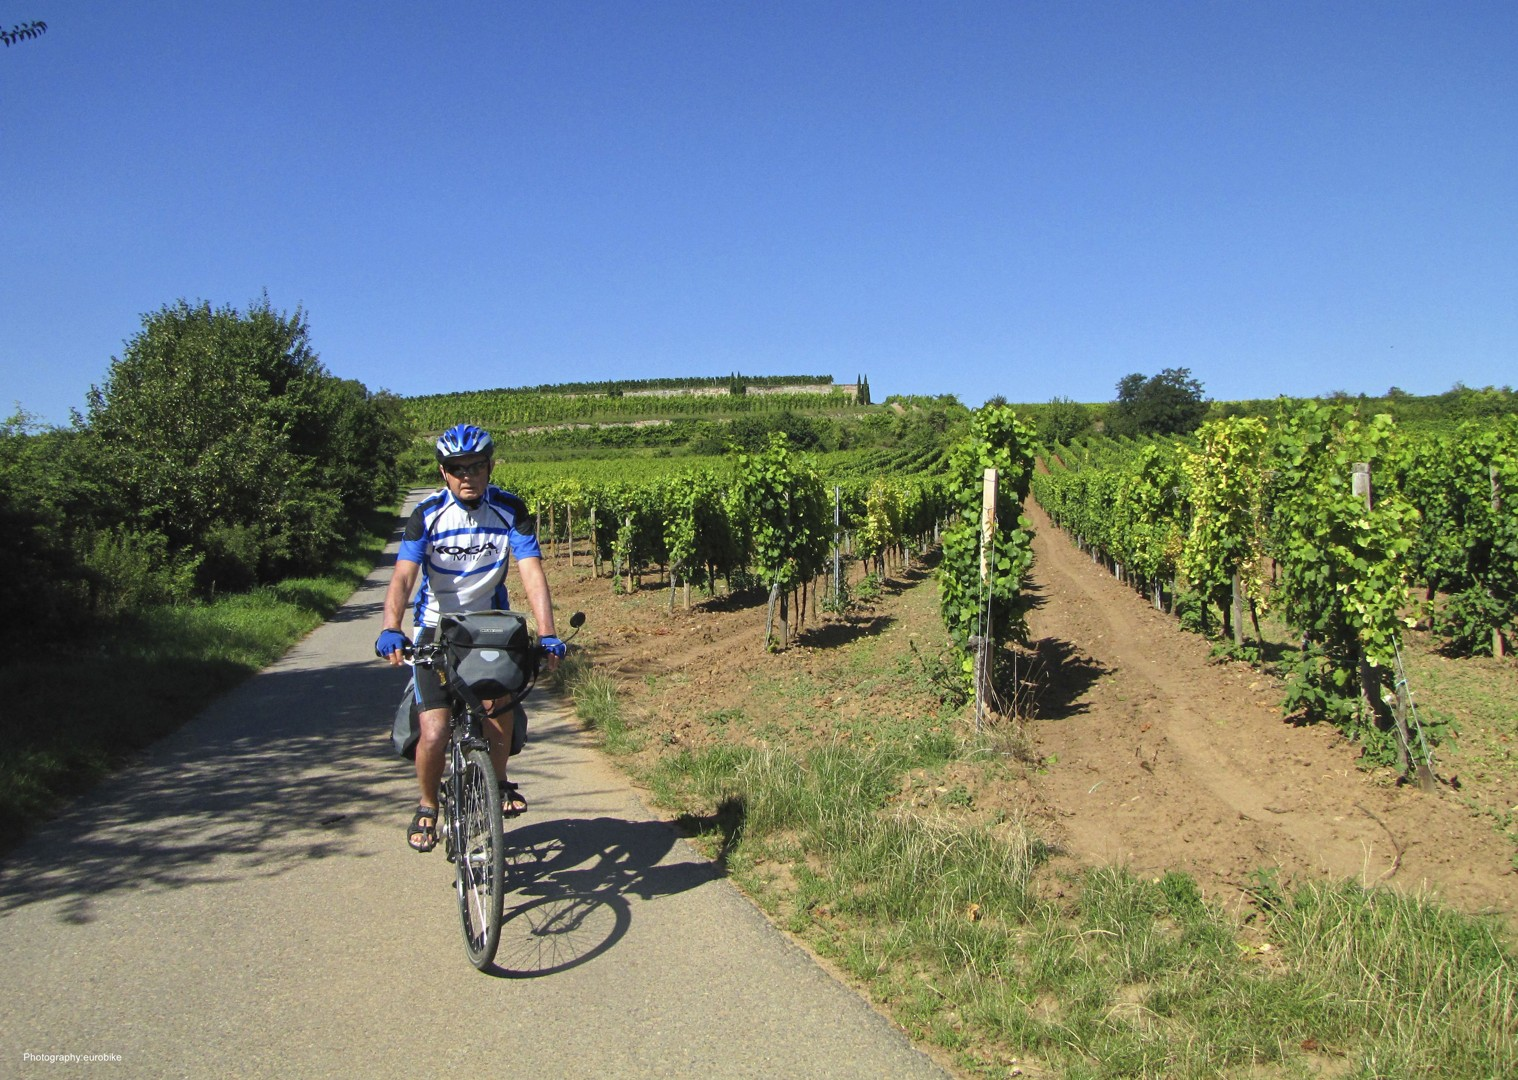 leisure-cycling-holiday-rhine-radweg-strassburg-mainz-pfalz-radfahrer-16_28013741354_o copy.jpg - Germany and France - The Rhine Valley - Self-Guided Leisure Cycling Holiday - Leisure Cycling